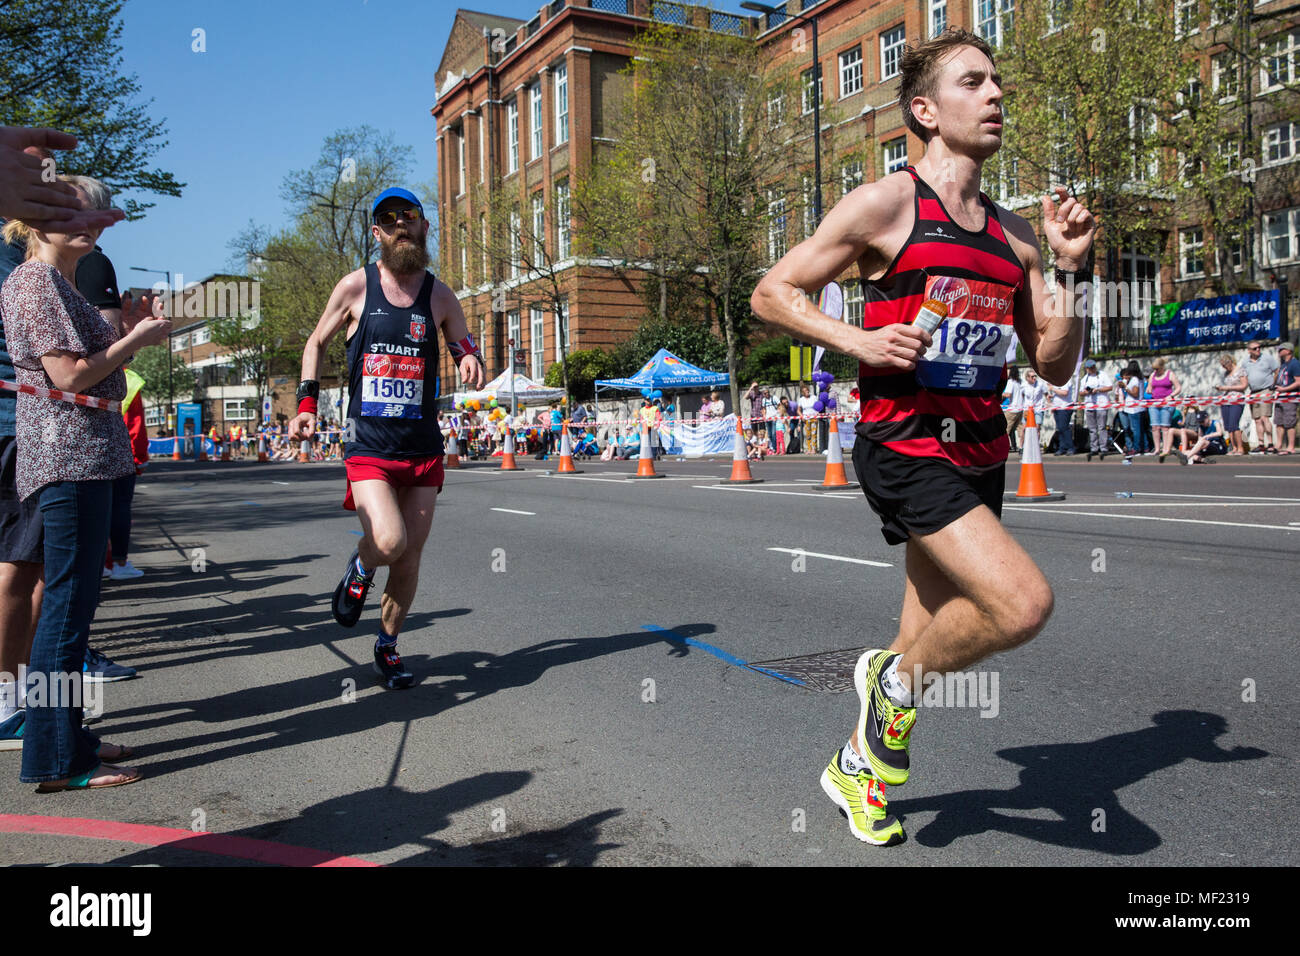 London, UK. 22nd April, 2018. Matthew Robertson of Herne Hill Harriers competes in the 2018 Virgin Money London Marathon. The 38th edition of the race was the hottest on record with a temperature of 24.1C recorded in St James's Park. - Stock Image